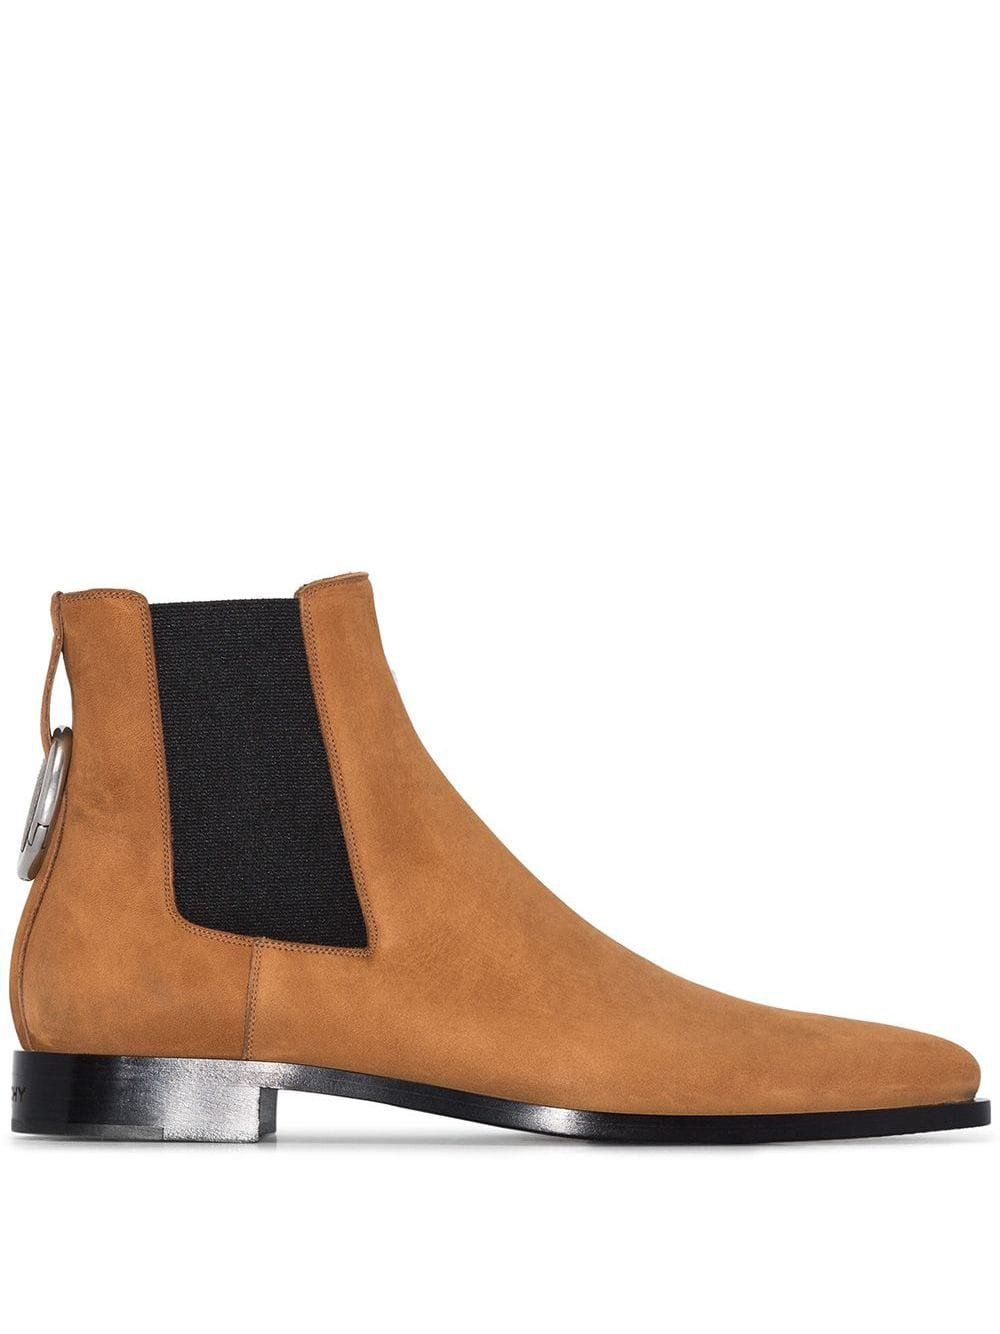 Givenchy Loop Chelsea Boots - Farfetch